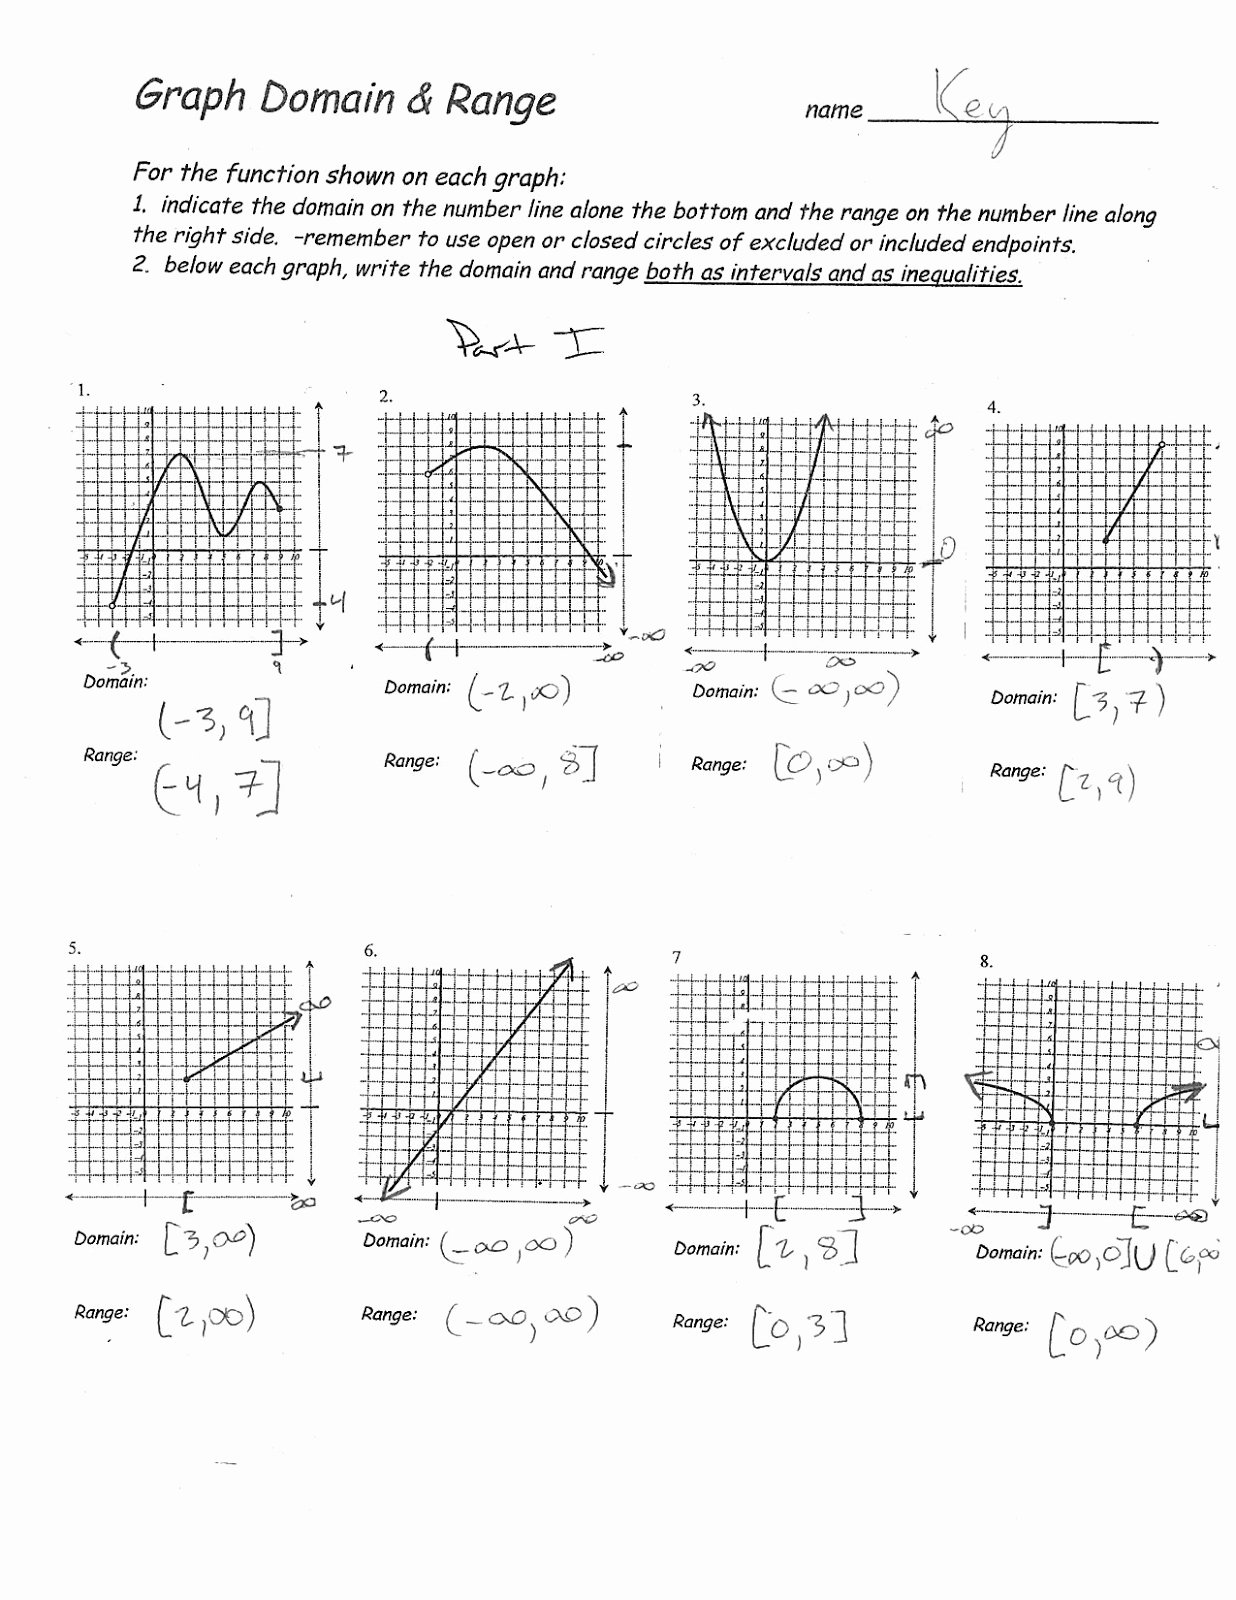 Domain and Range Worksheet Answers New Mr Suominen S Math Homepage College Mathematics 11 29 12